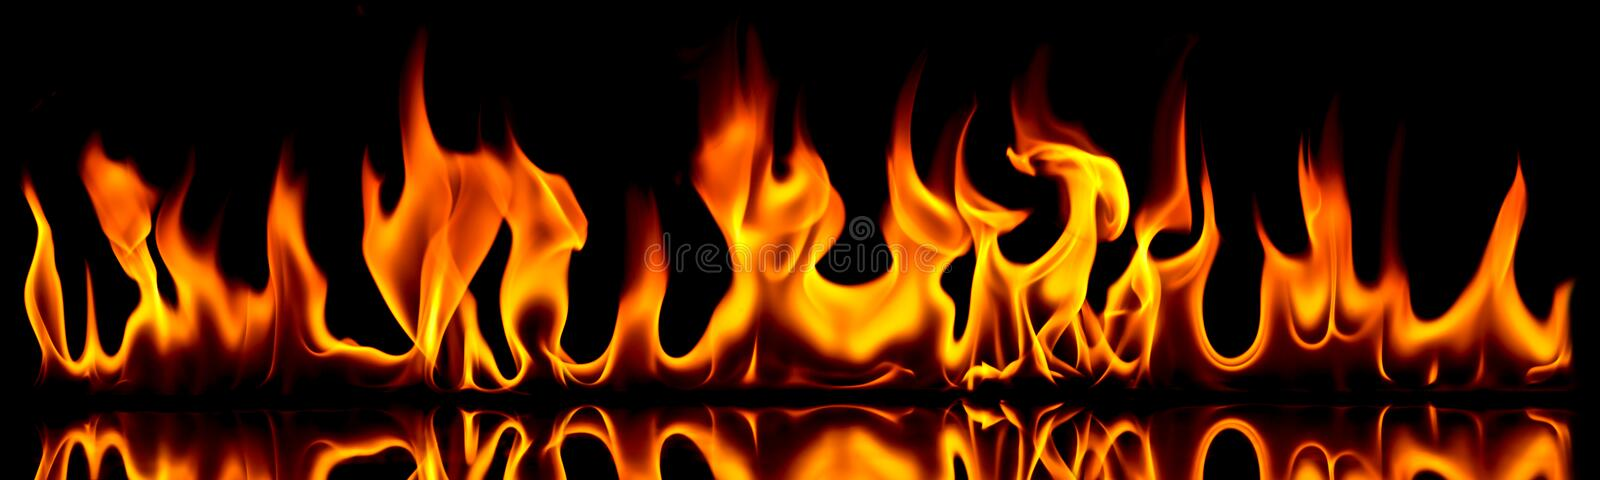 Fire and flames. stock image